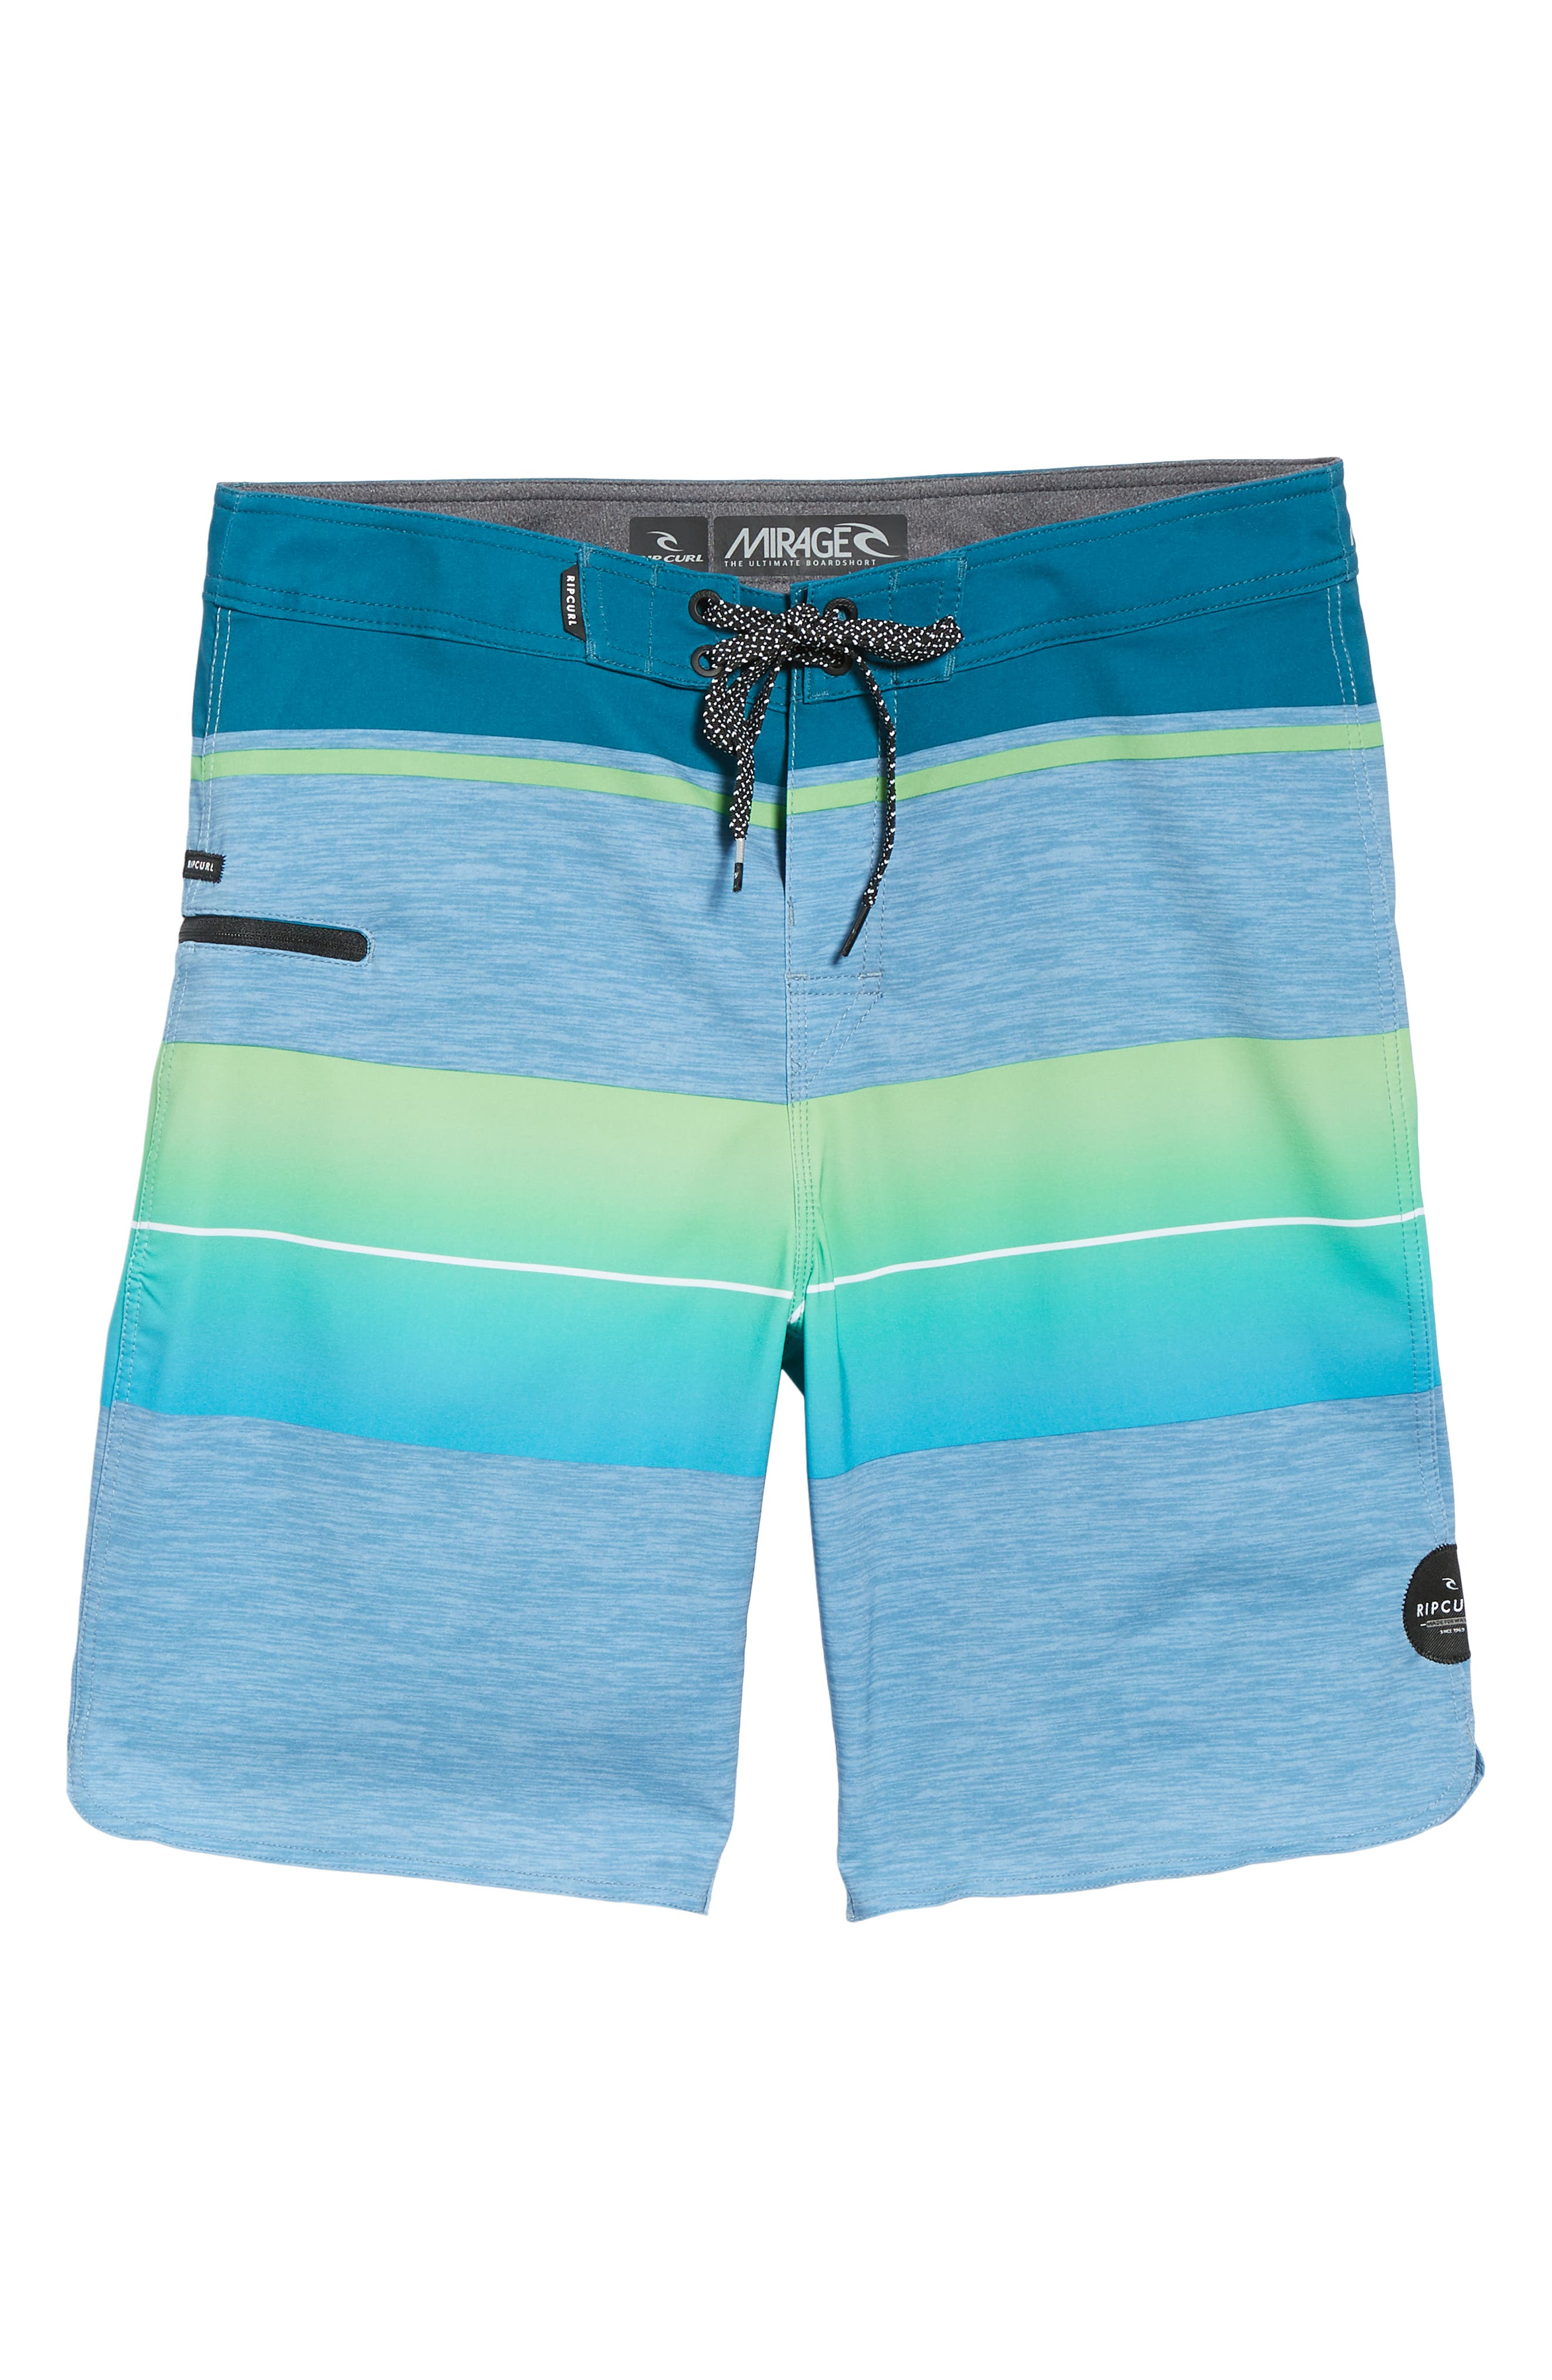 Mirage Eclipse Board Shorts,                             Alternate thumbnail 6, color,                             300